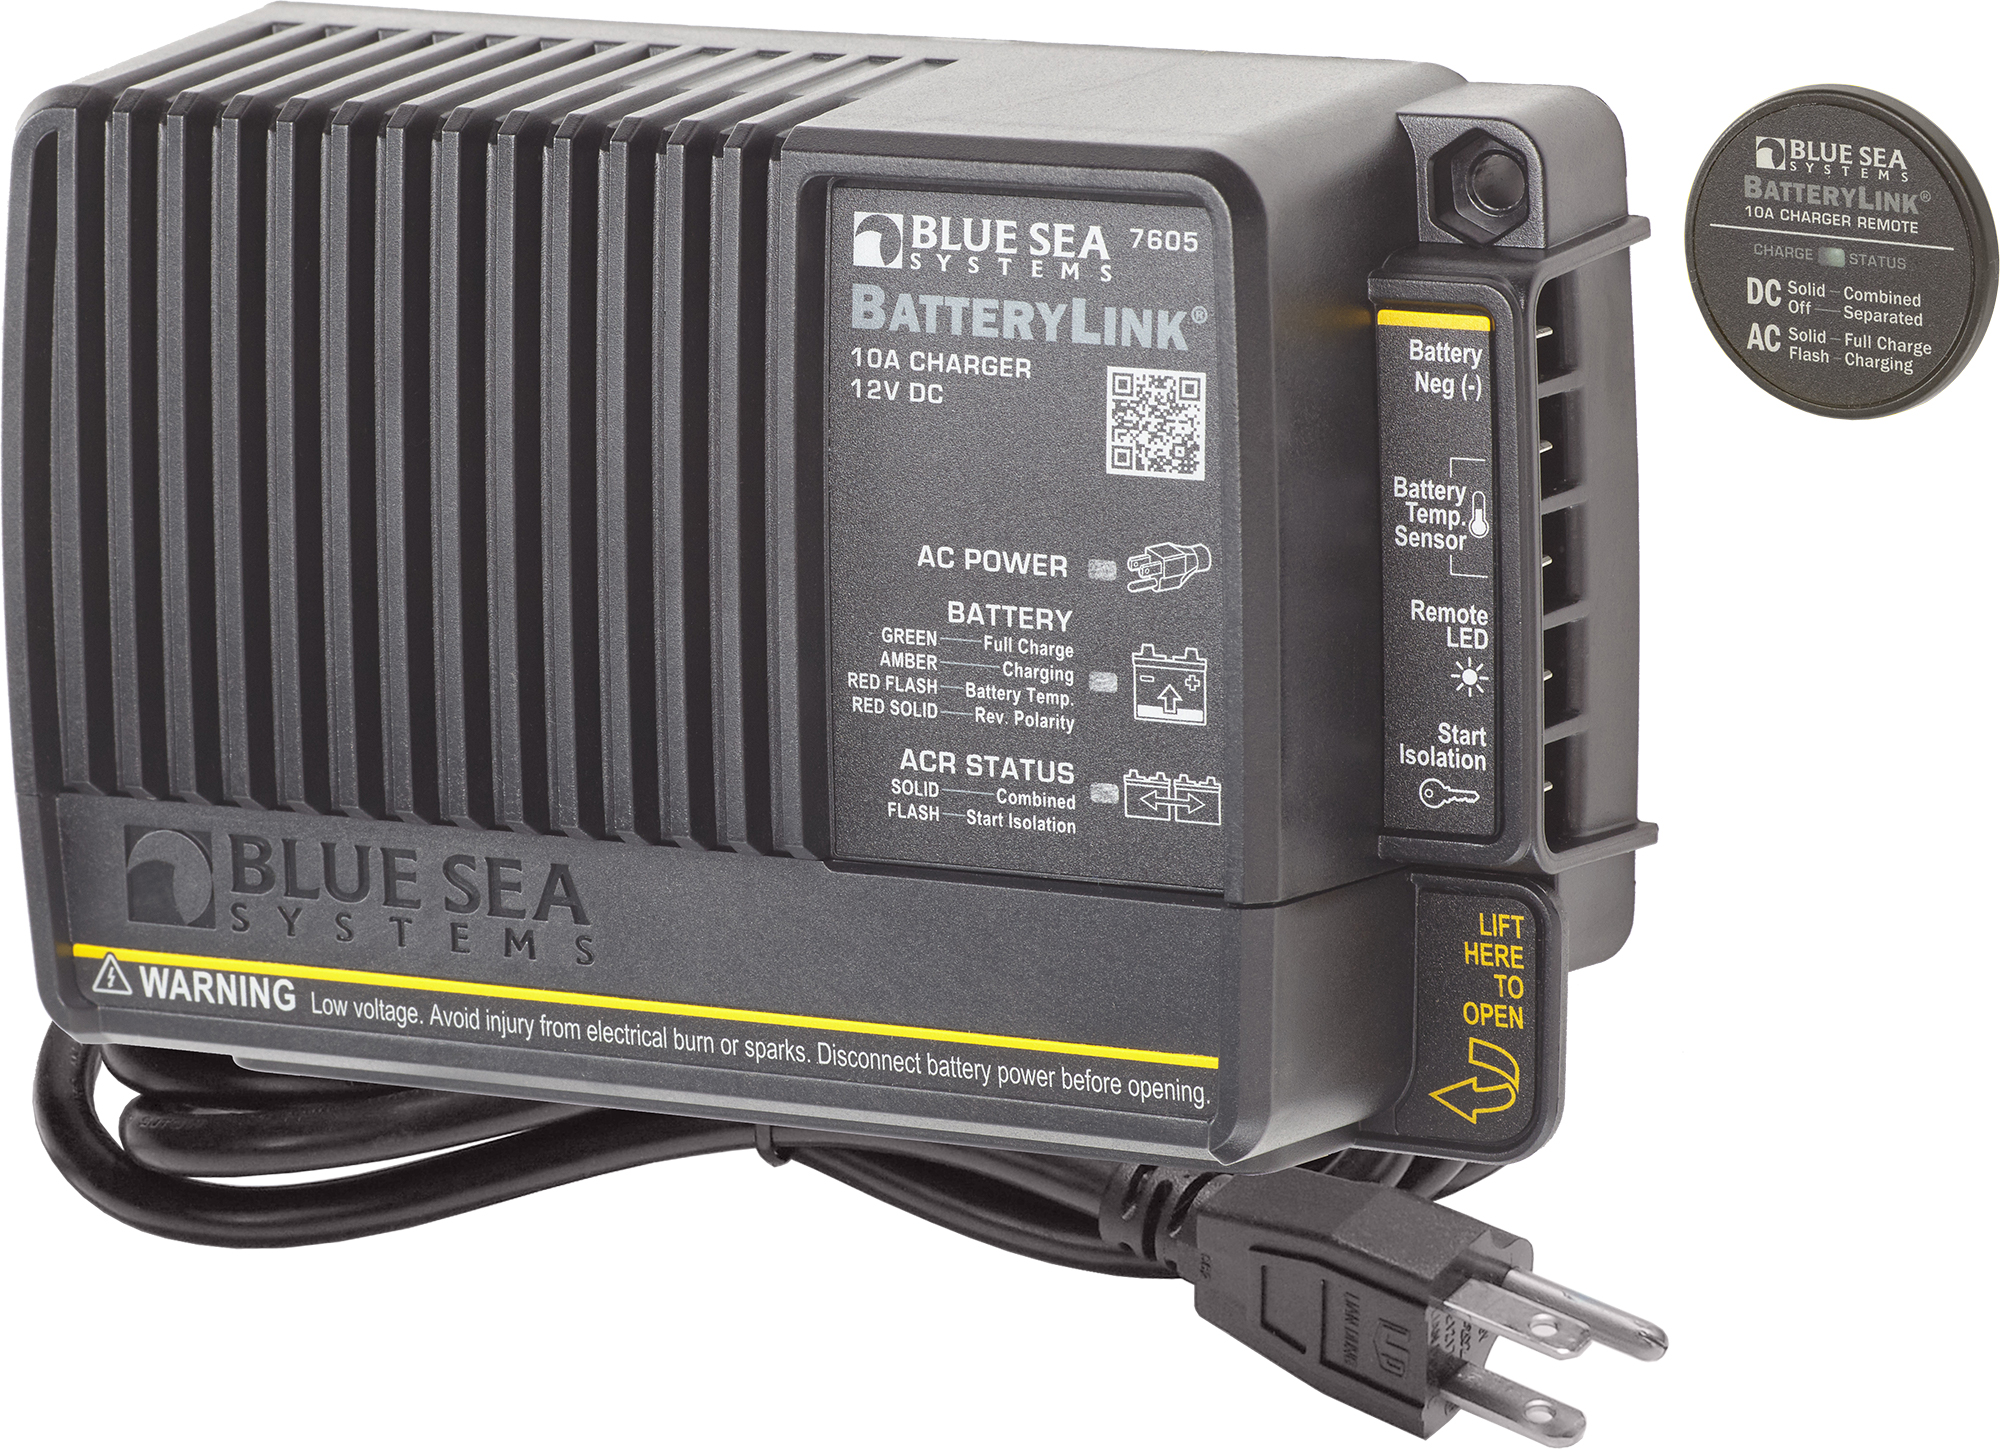 10A BatteryLink® Charger (North America) - Blue Sea Systems on blue sea acr with two engines, blue sea 7650 installation, blue sea battery selector wiring, carolina skiff diagram, blue sea fuse block wiring diagram,